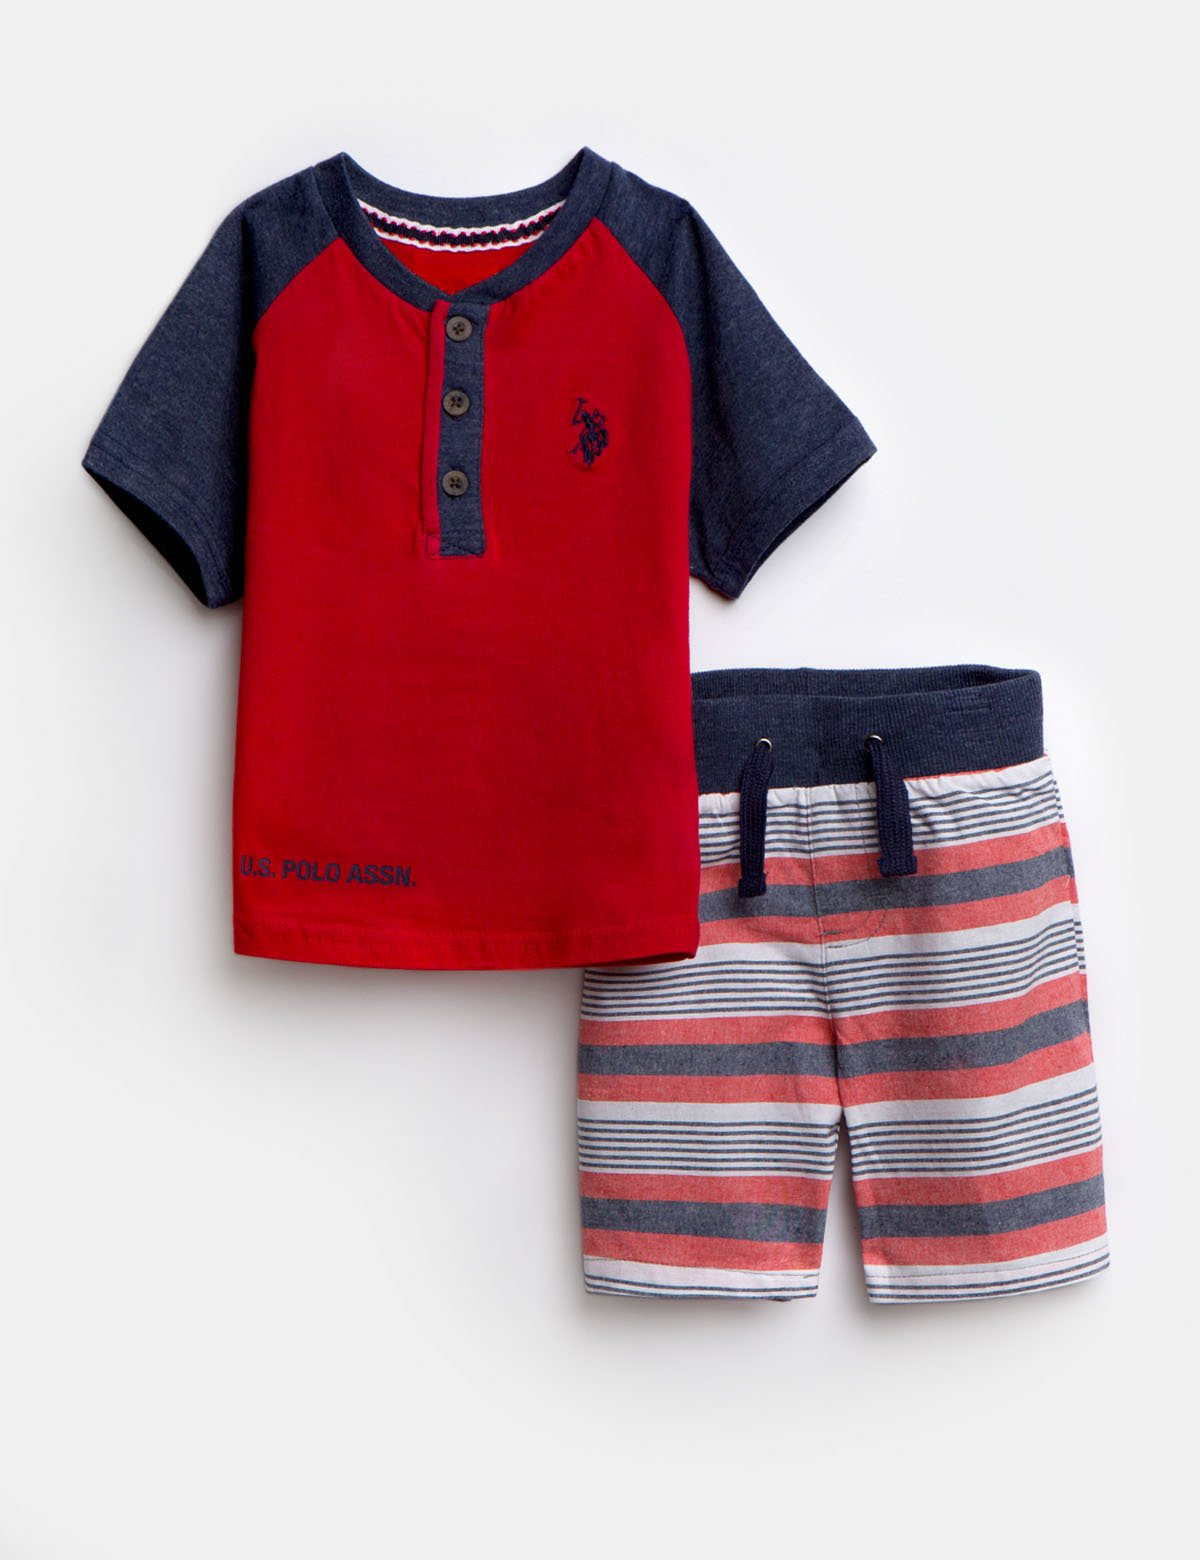 TODDLER 2 PIECE SET - Tee & Shorts